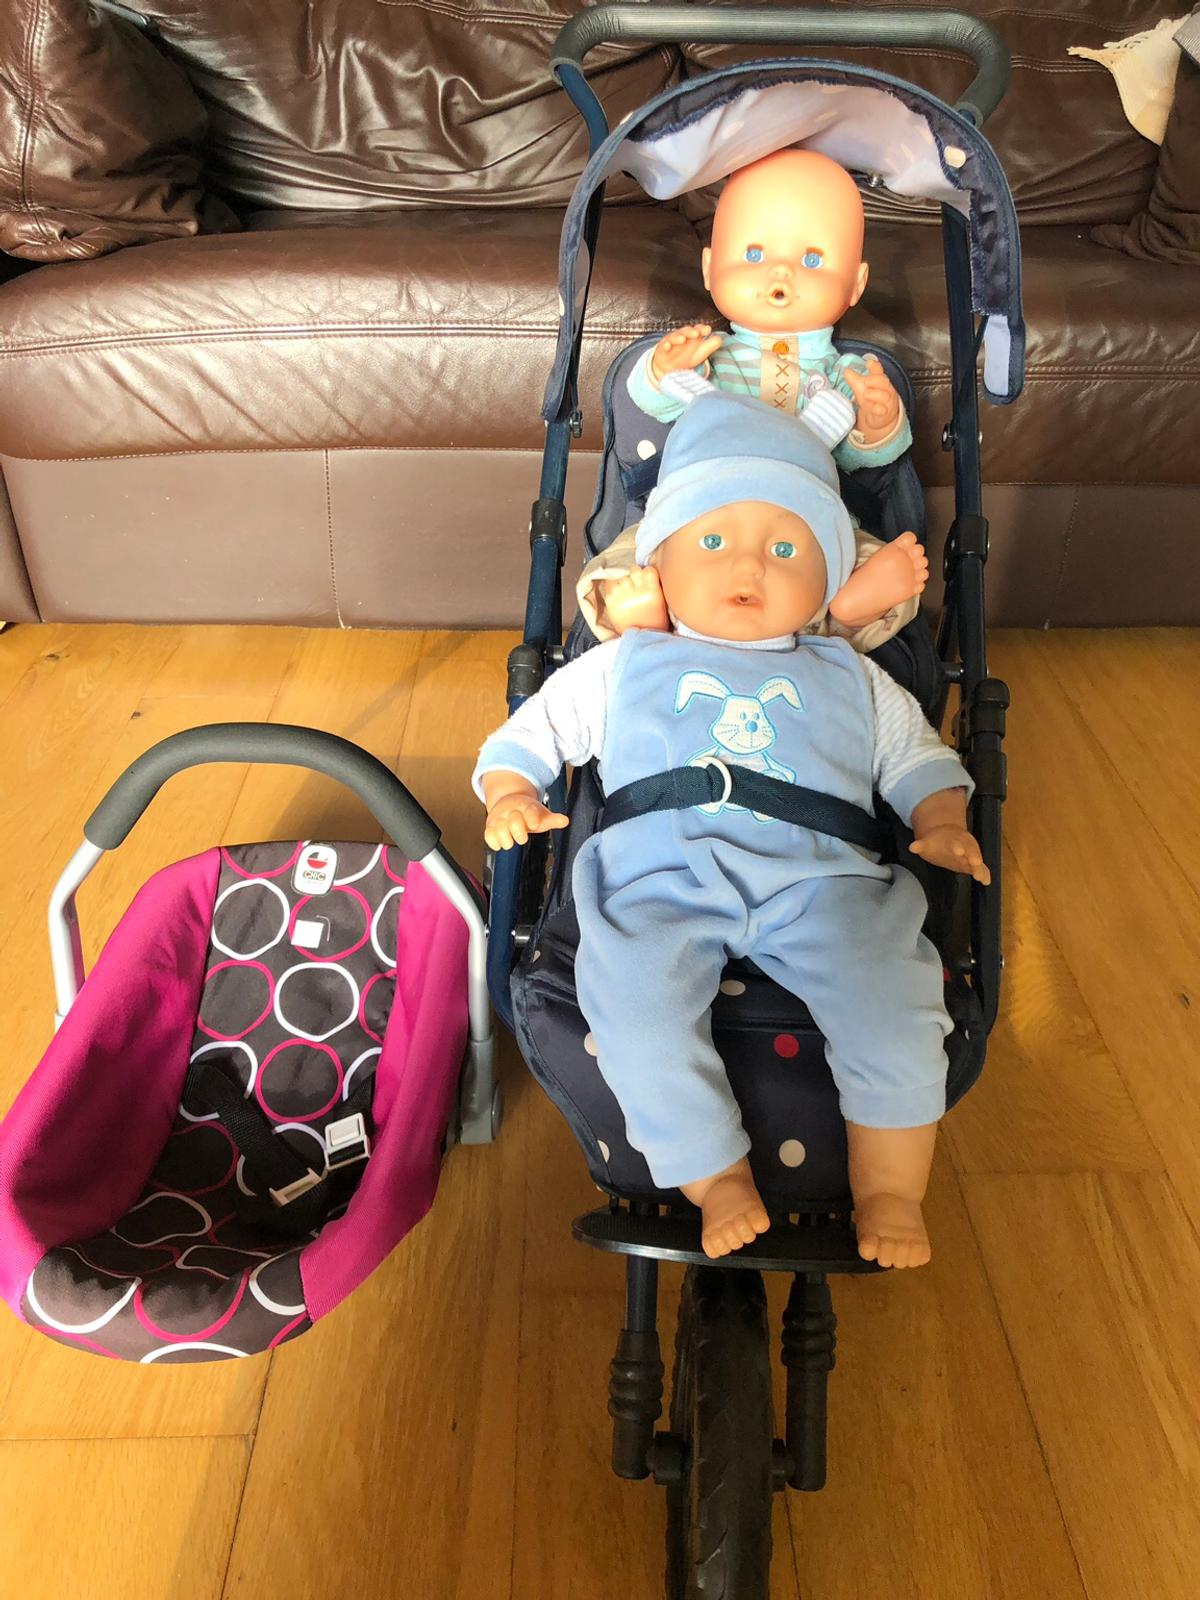 Toy Buggy With Car Seat Dolls Double Decker Toy Buggy Carrier